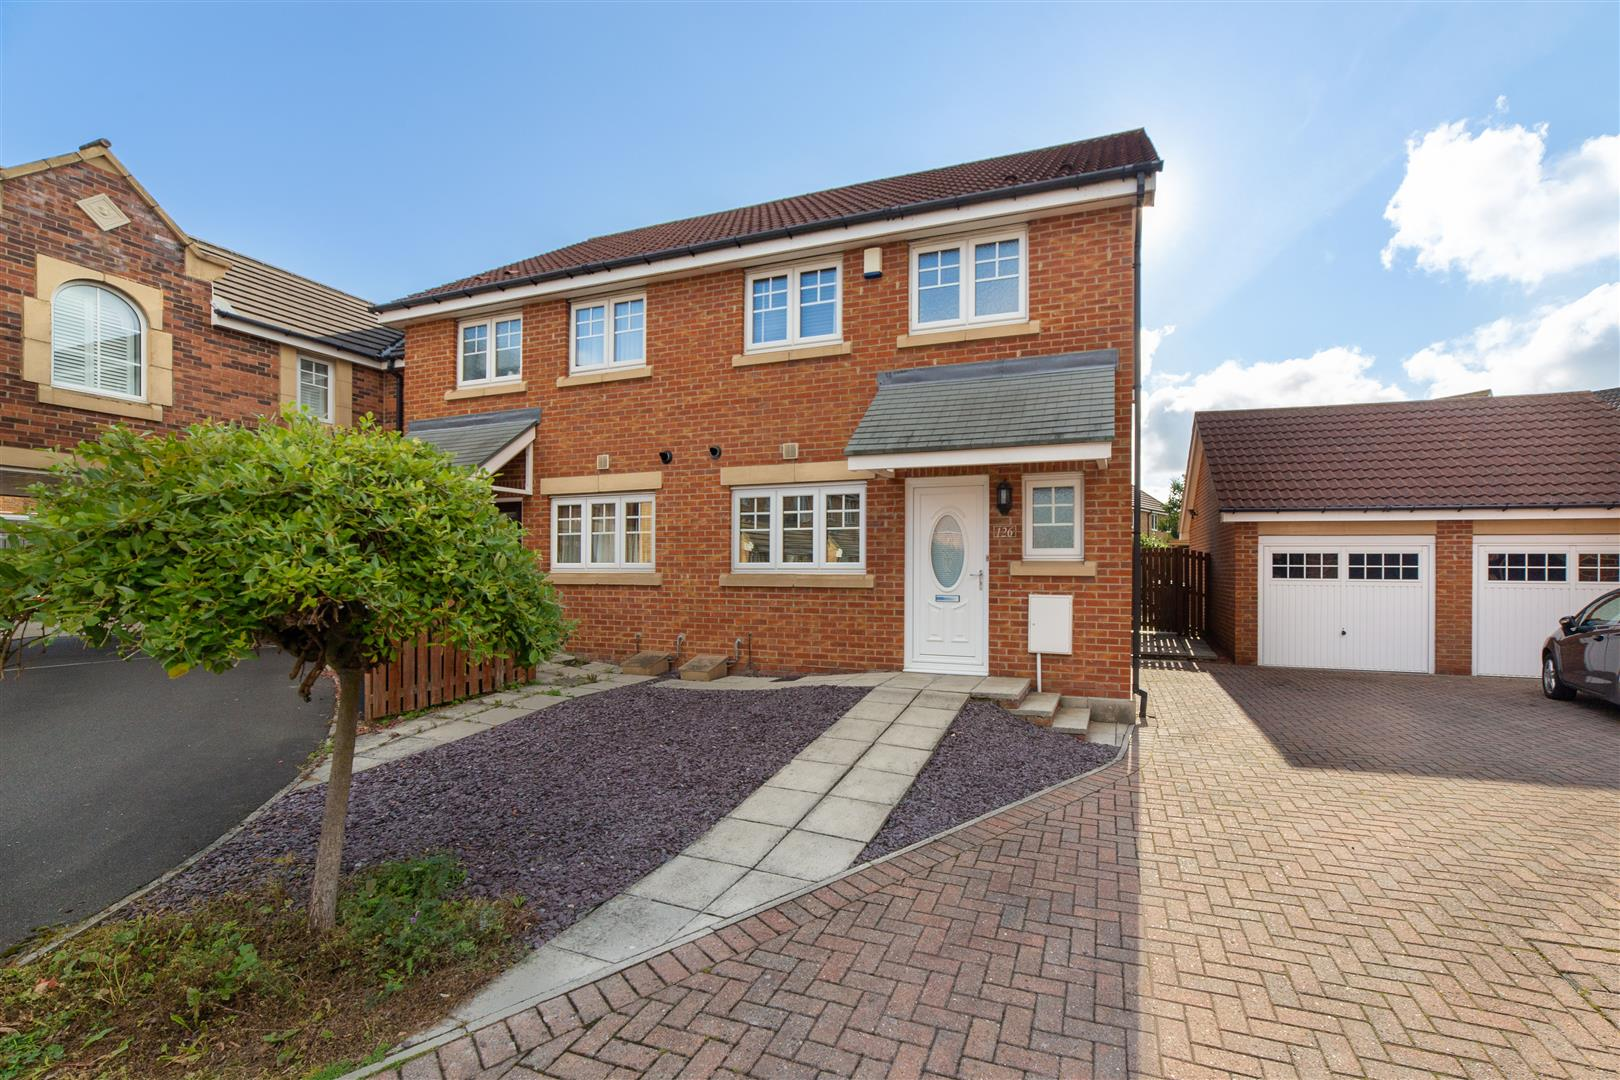 3 bed semi-detached house for sale in Forest Gate, Newcastle Upon Tyne, NE12